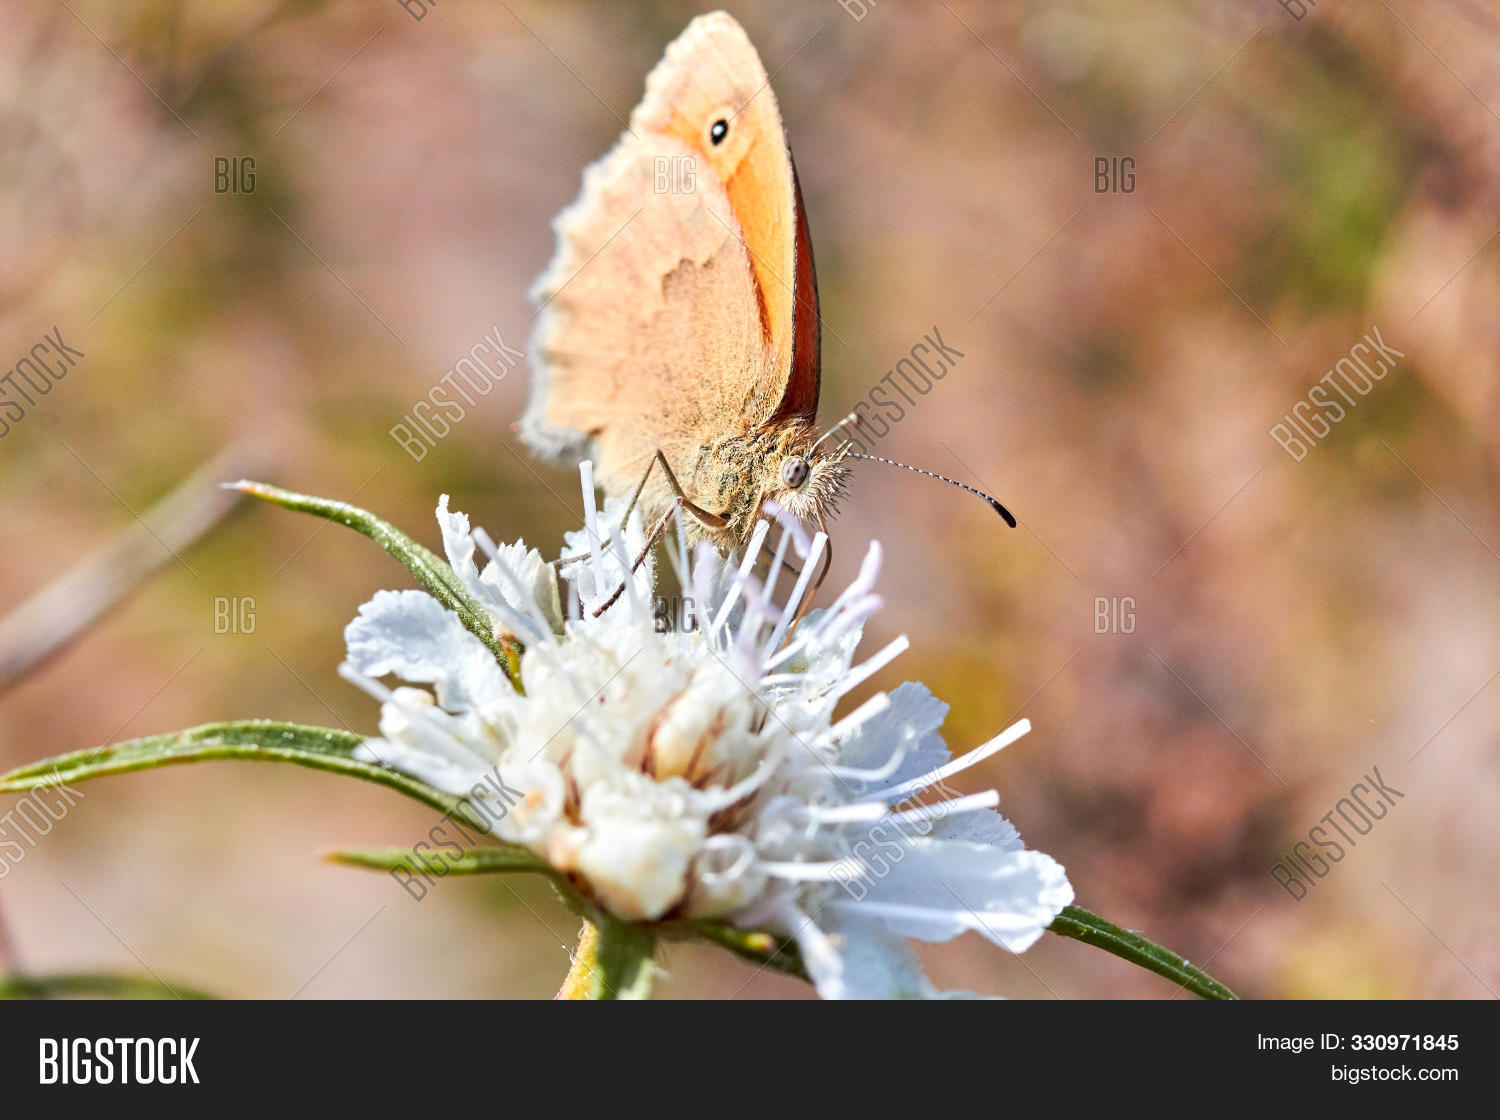 animal,background,beautiful,beauty,biology,blossom,bright,bug,butterfly,close,closeup,color,colorful,detail,drink,floral,flower,fly,garden,green,insect,macro,meadow,monarch,moth,natural,nature,nectar,pattern,photo,plant,pollen,purple,red,small,spring,summer,up,white,wild,wildlife,wing,yellow